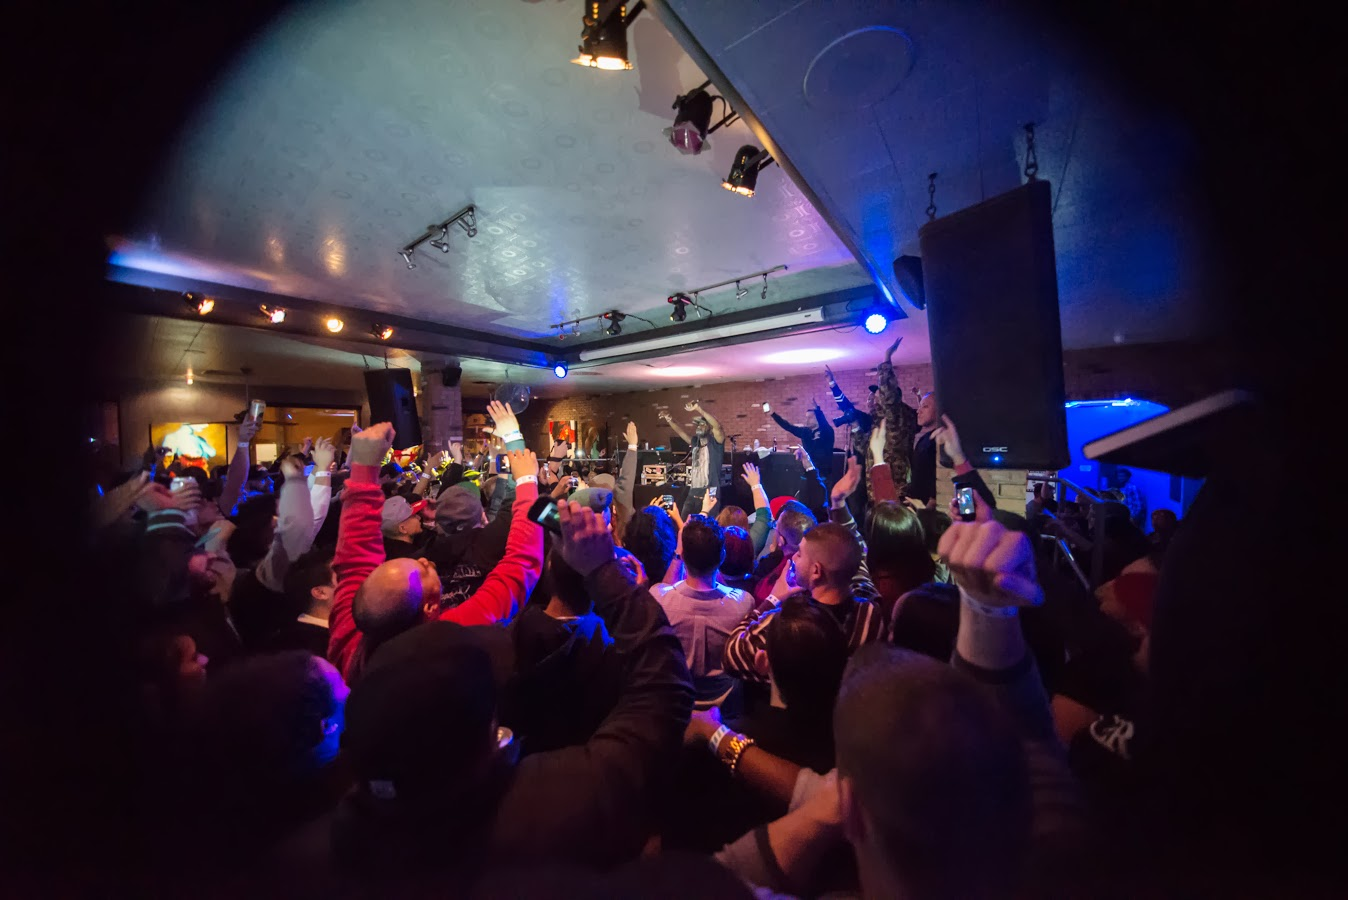 Alternative Rap Icon Talib Kweli Played To An Absolutely Packed House At The Cellar Door In Lovely Downtown Visalia Night Of Dec